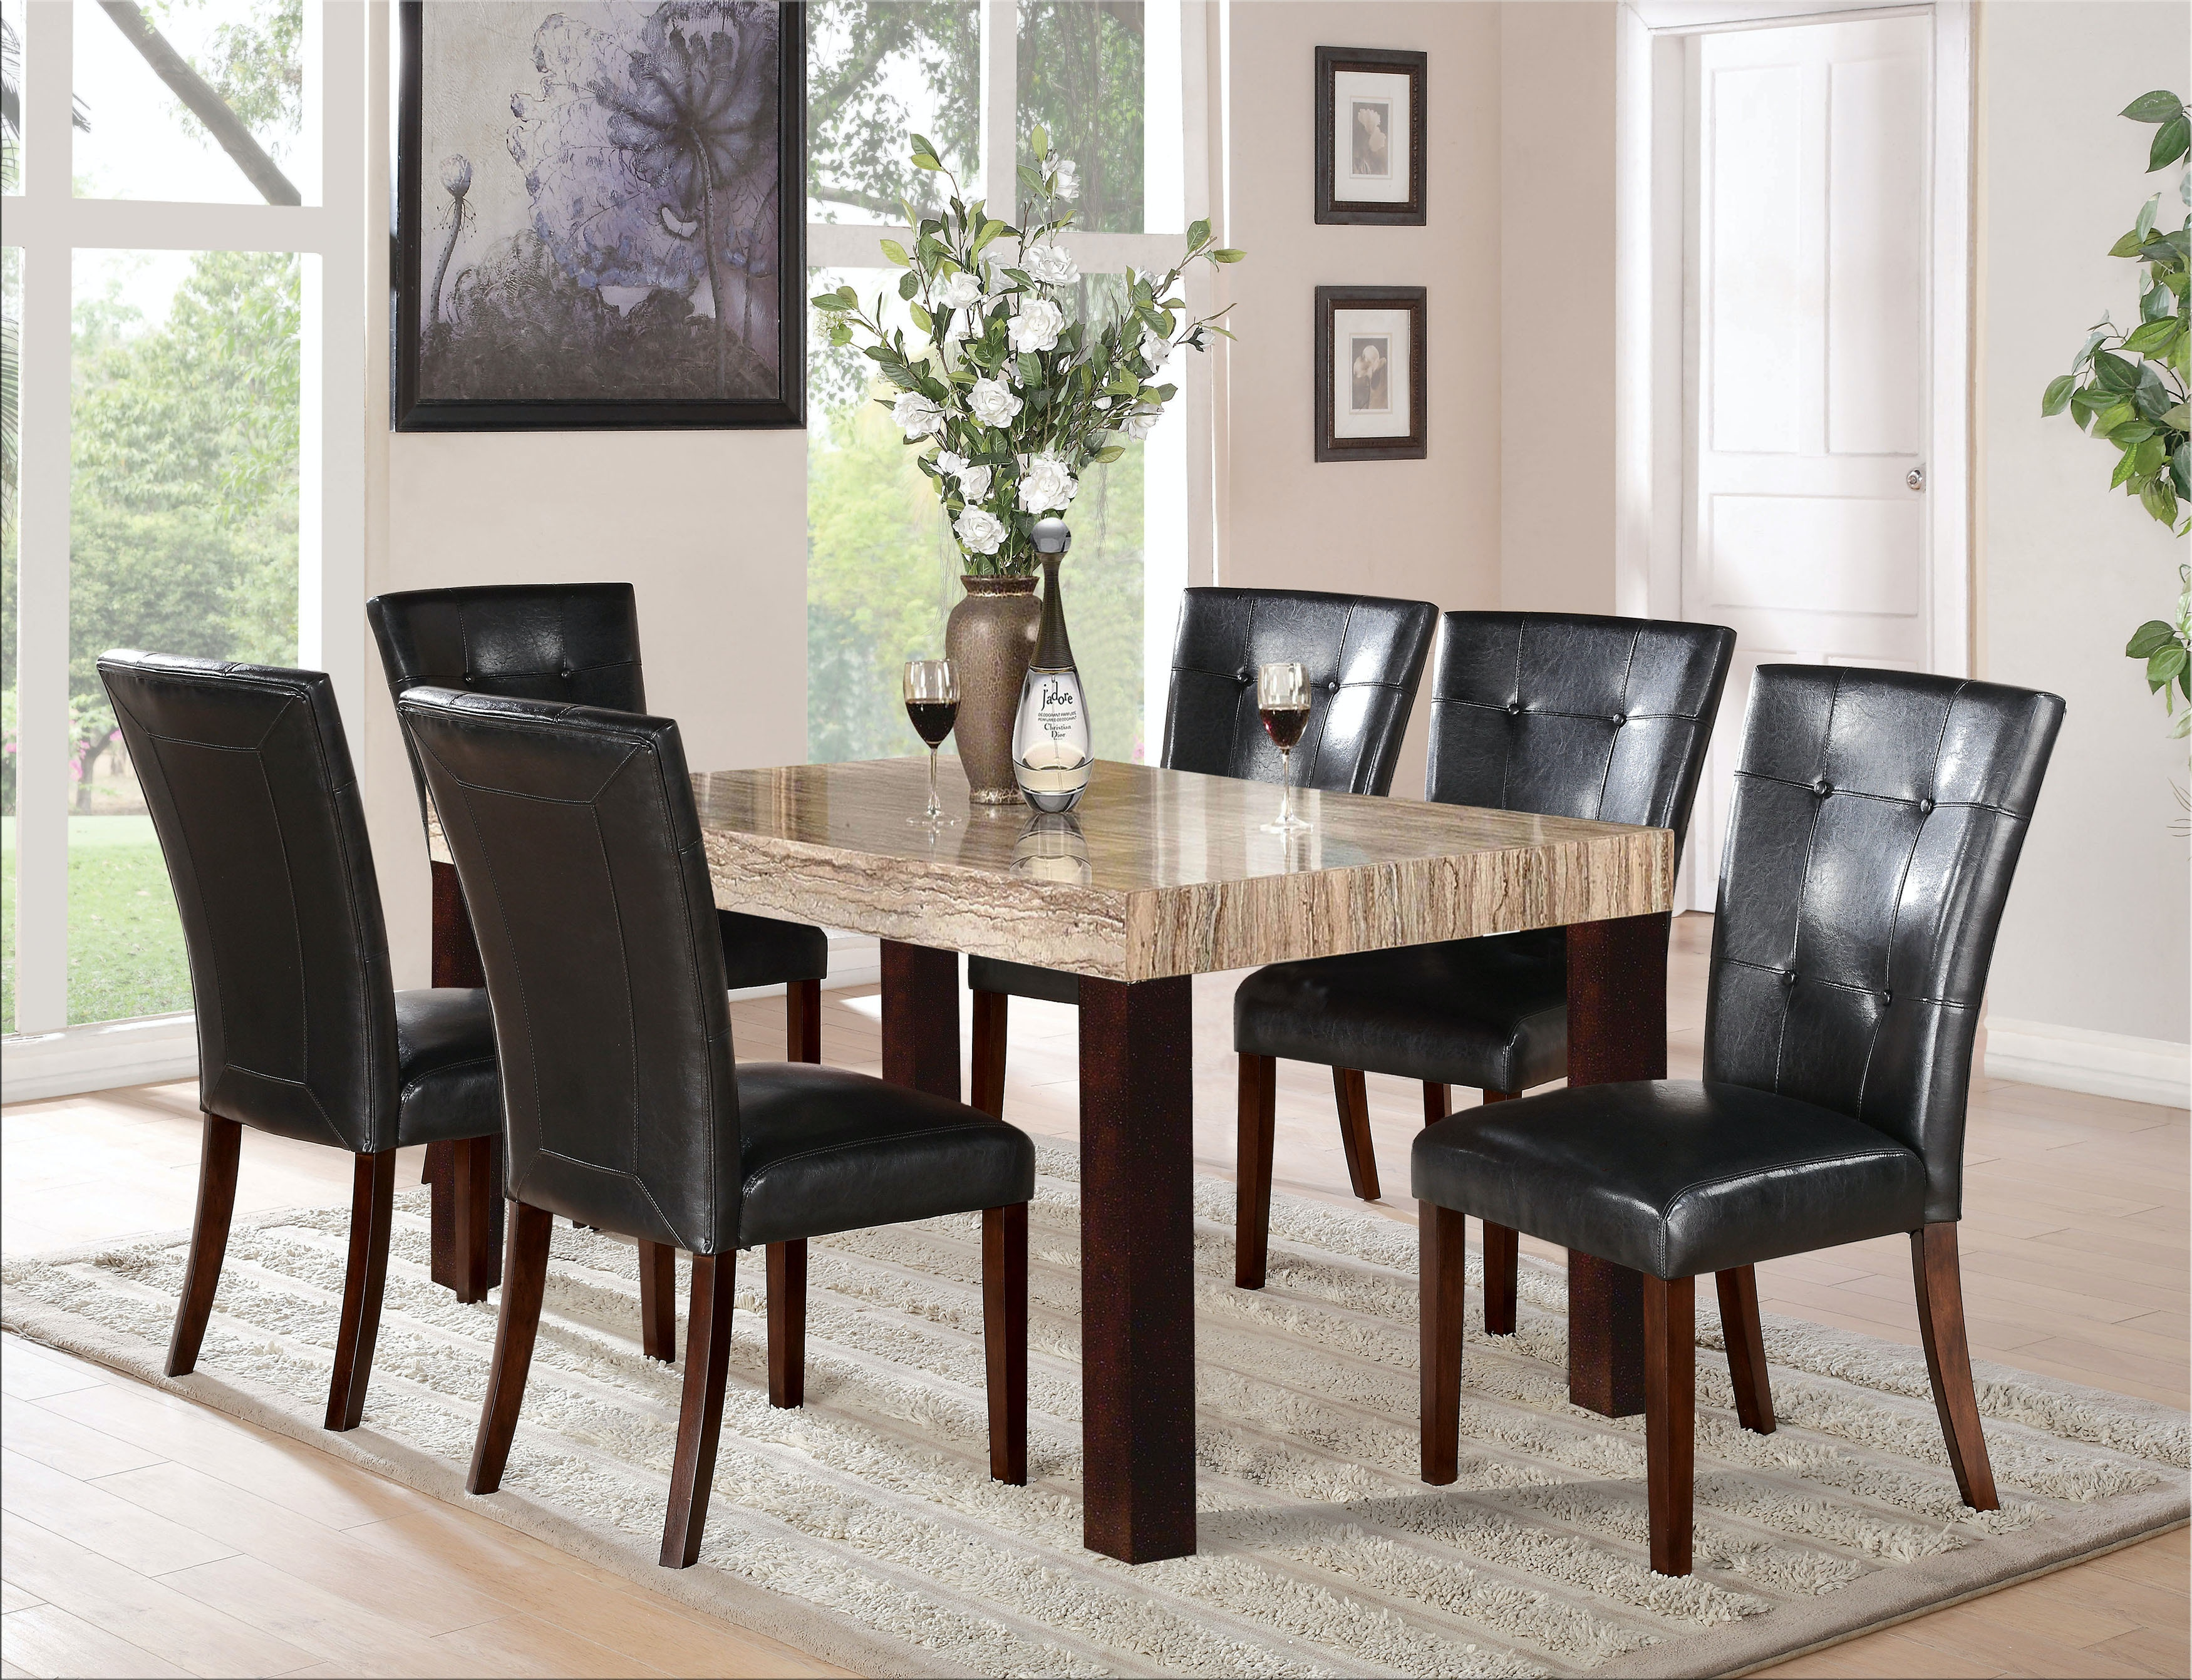 Exceptional Acme Furniture Fraser Dining Table 70130